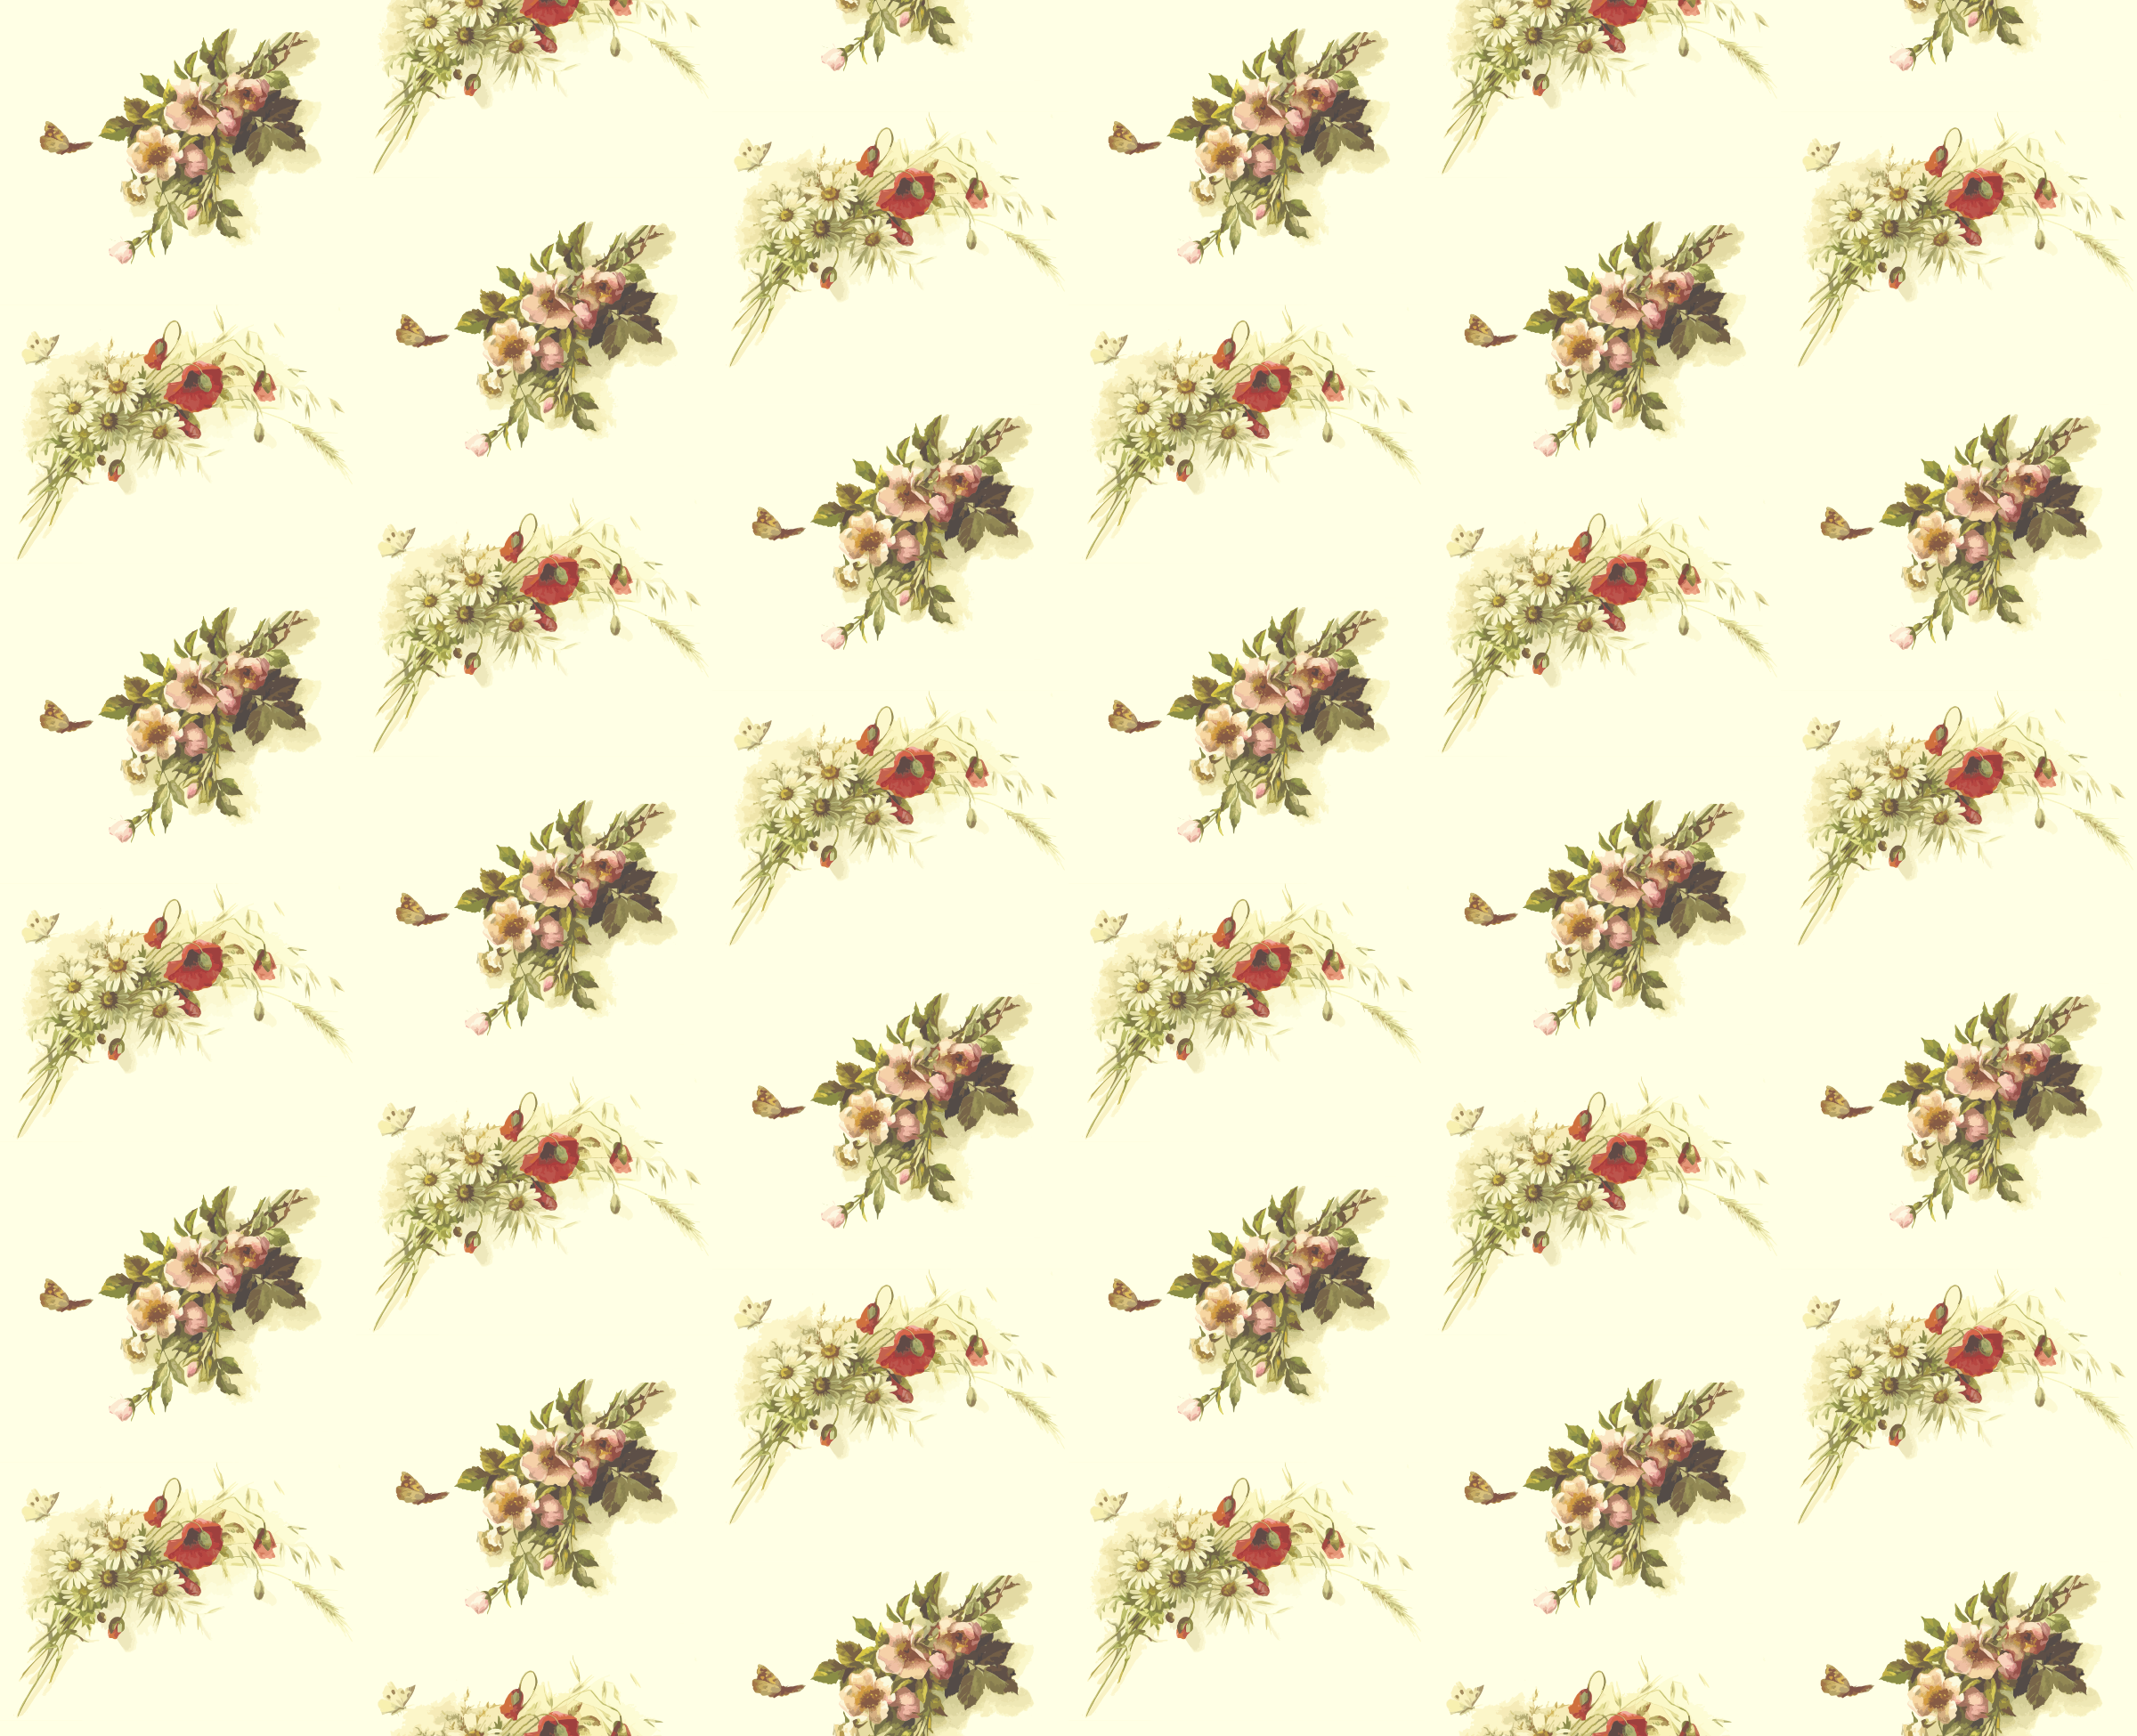 Flowers and butterflies pattern by Firkin